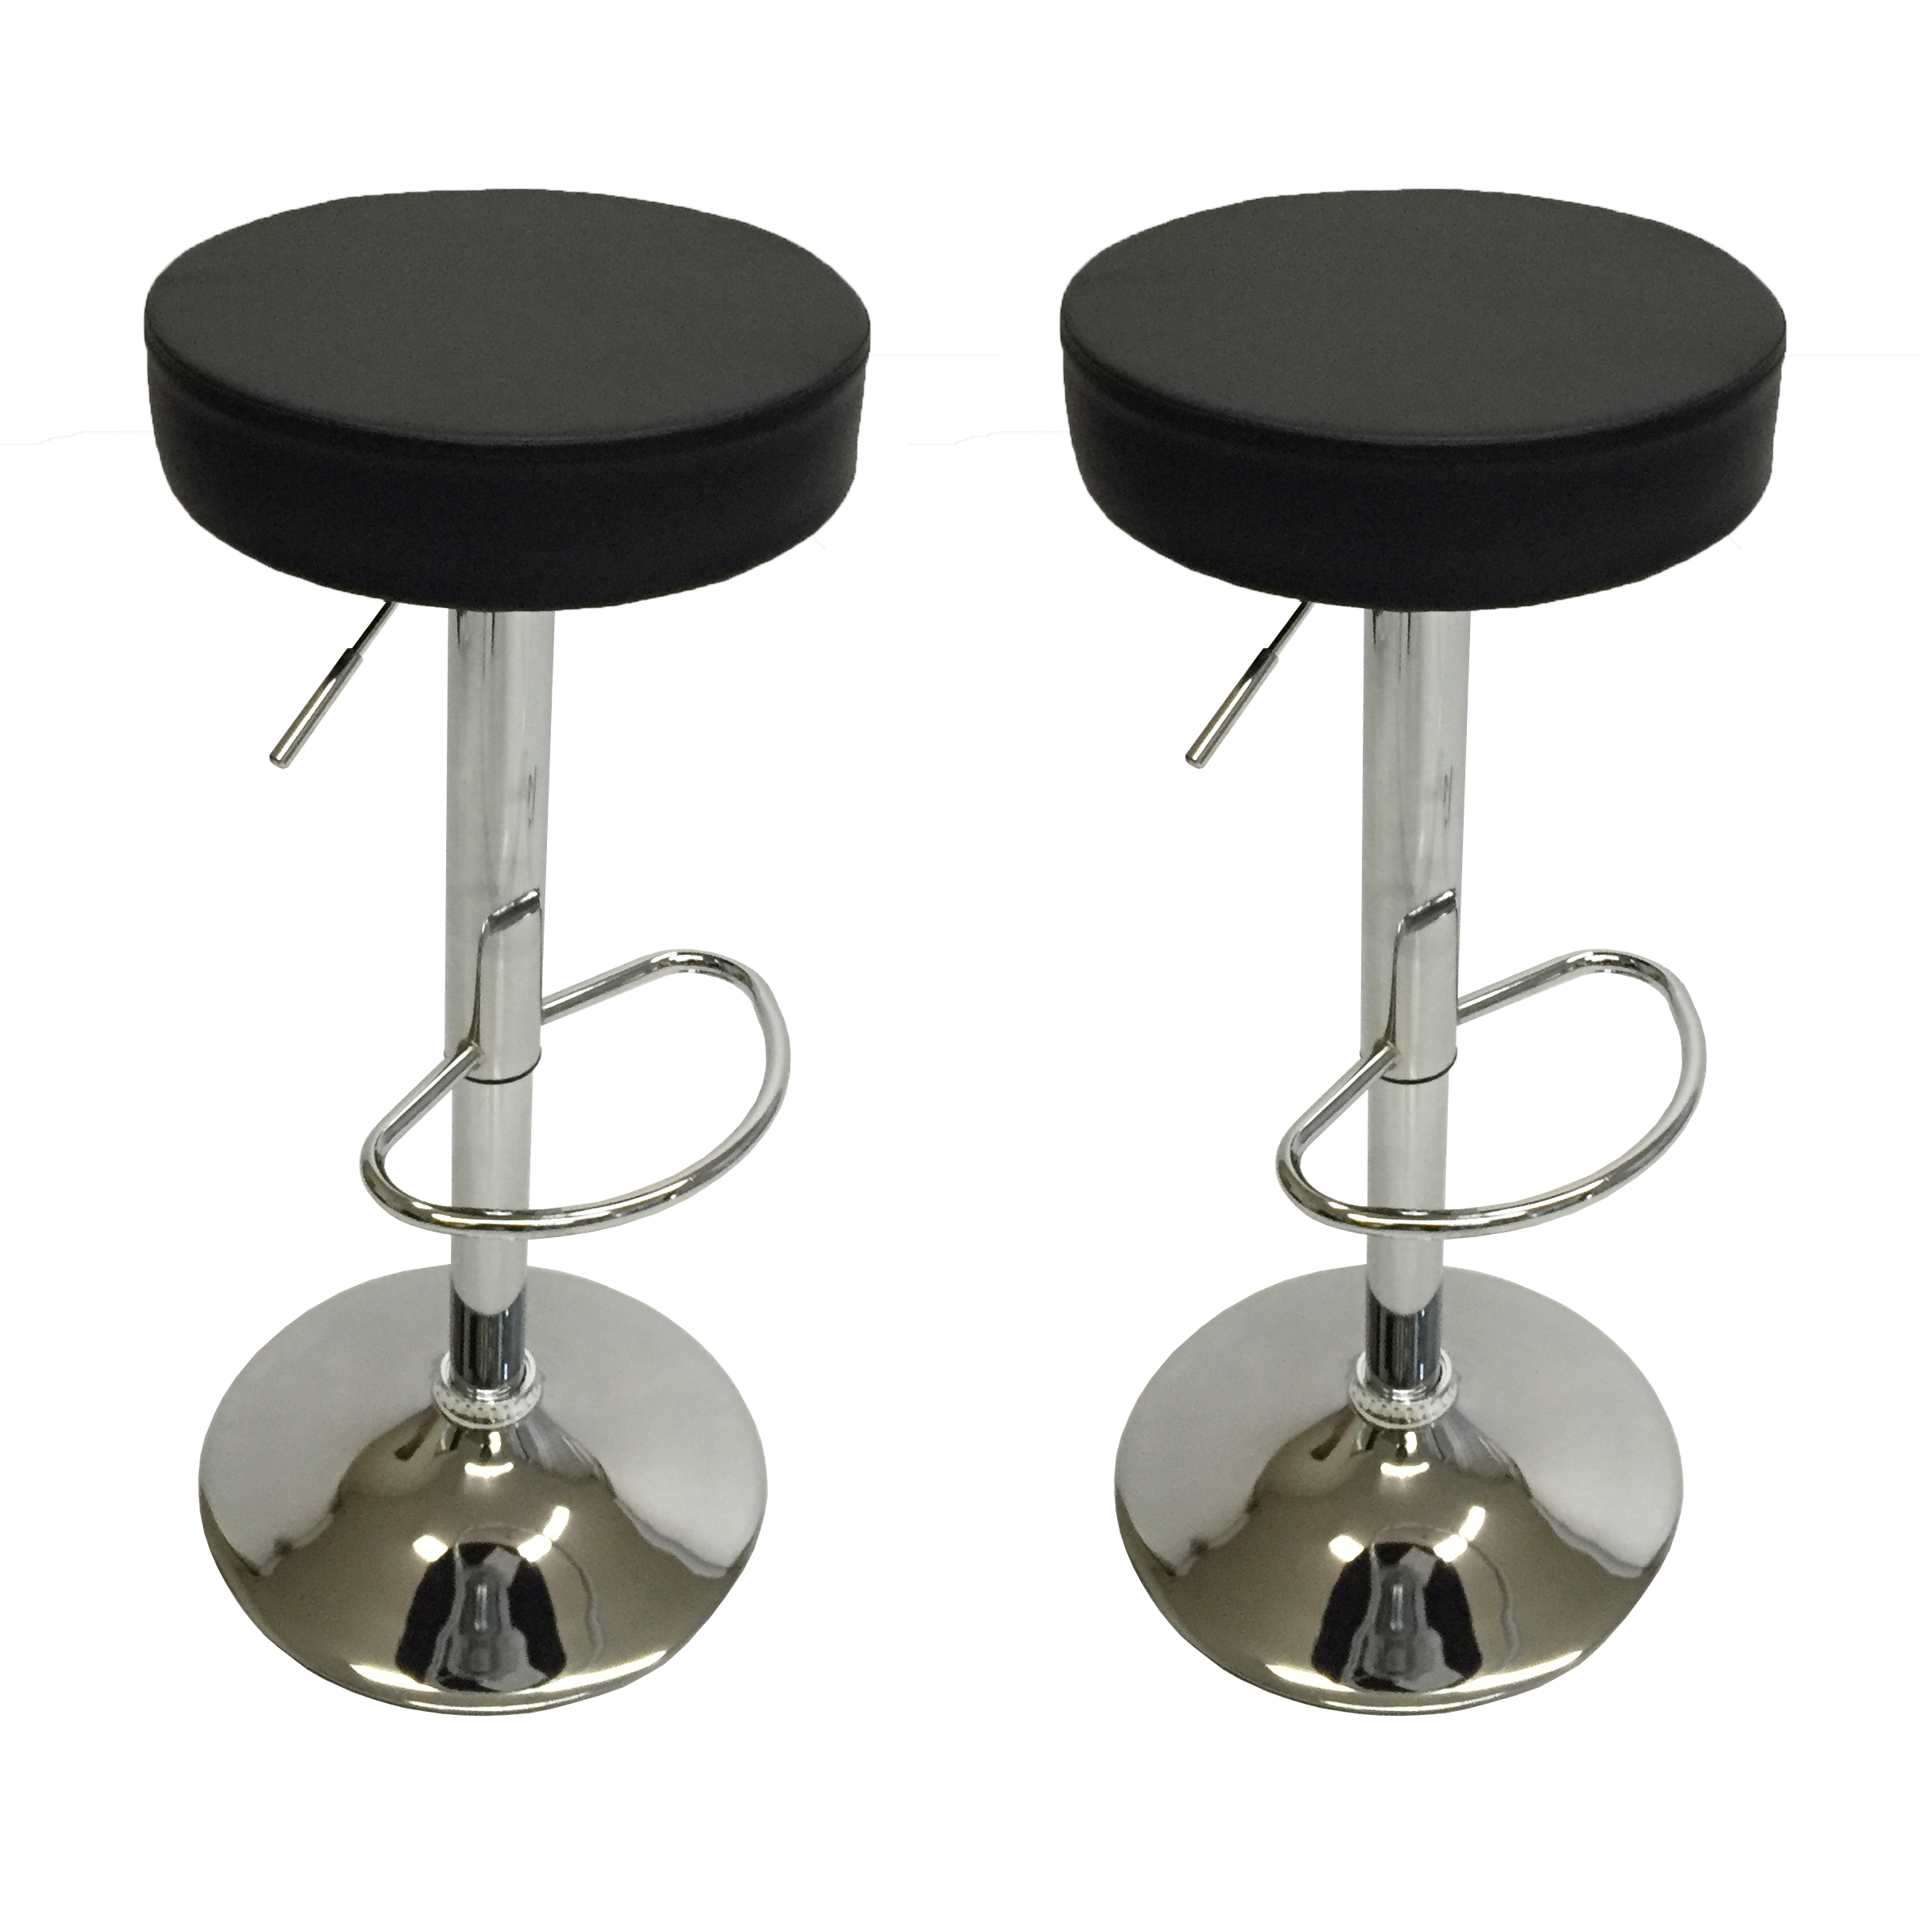 bar stools modern hydraulic swivel dining chair barstools black ebay